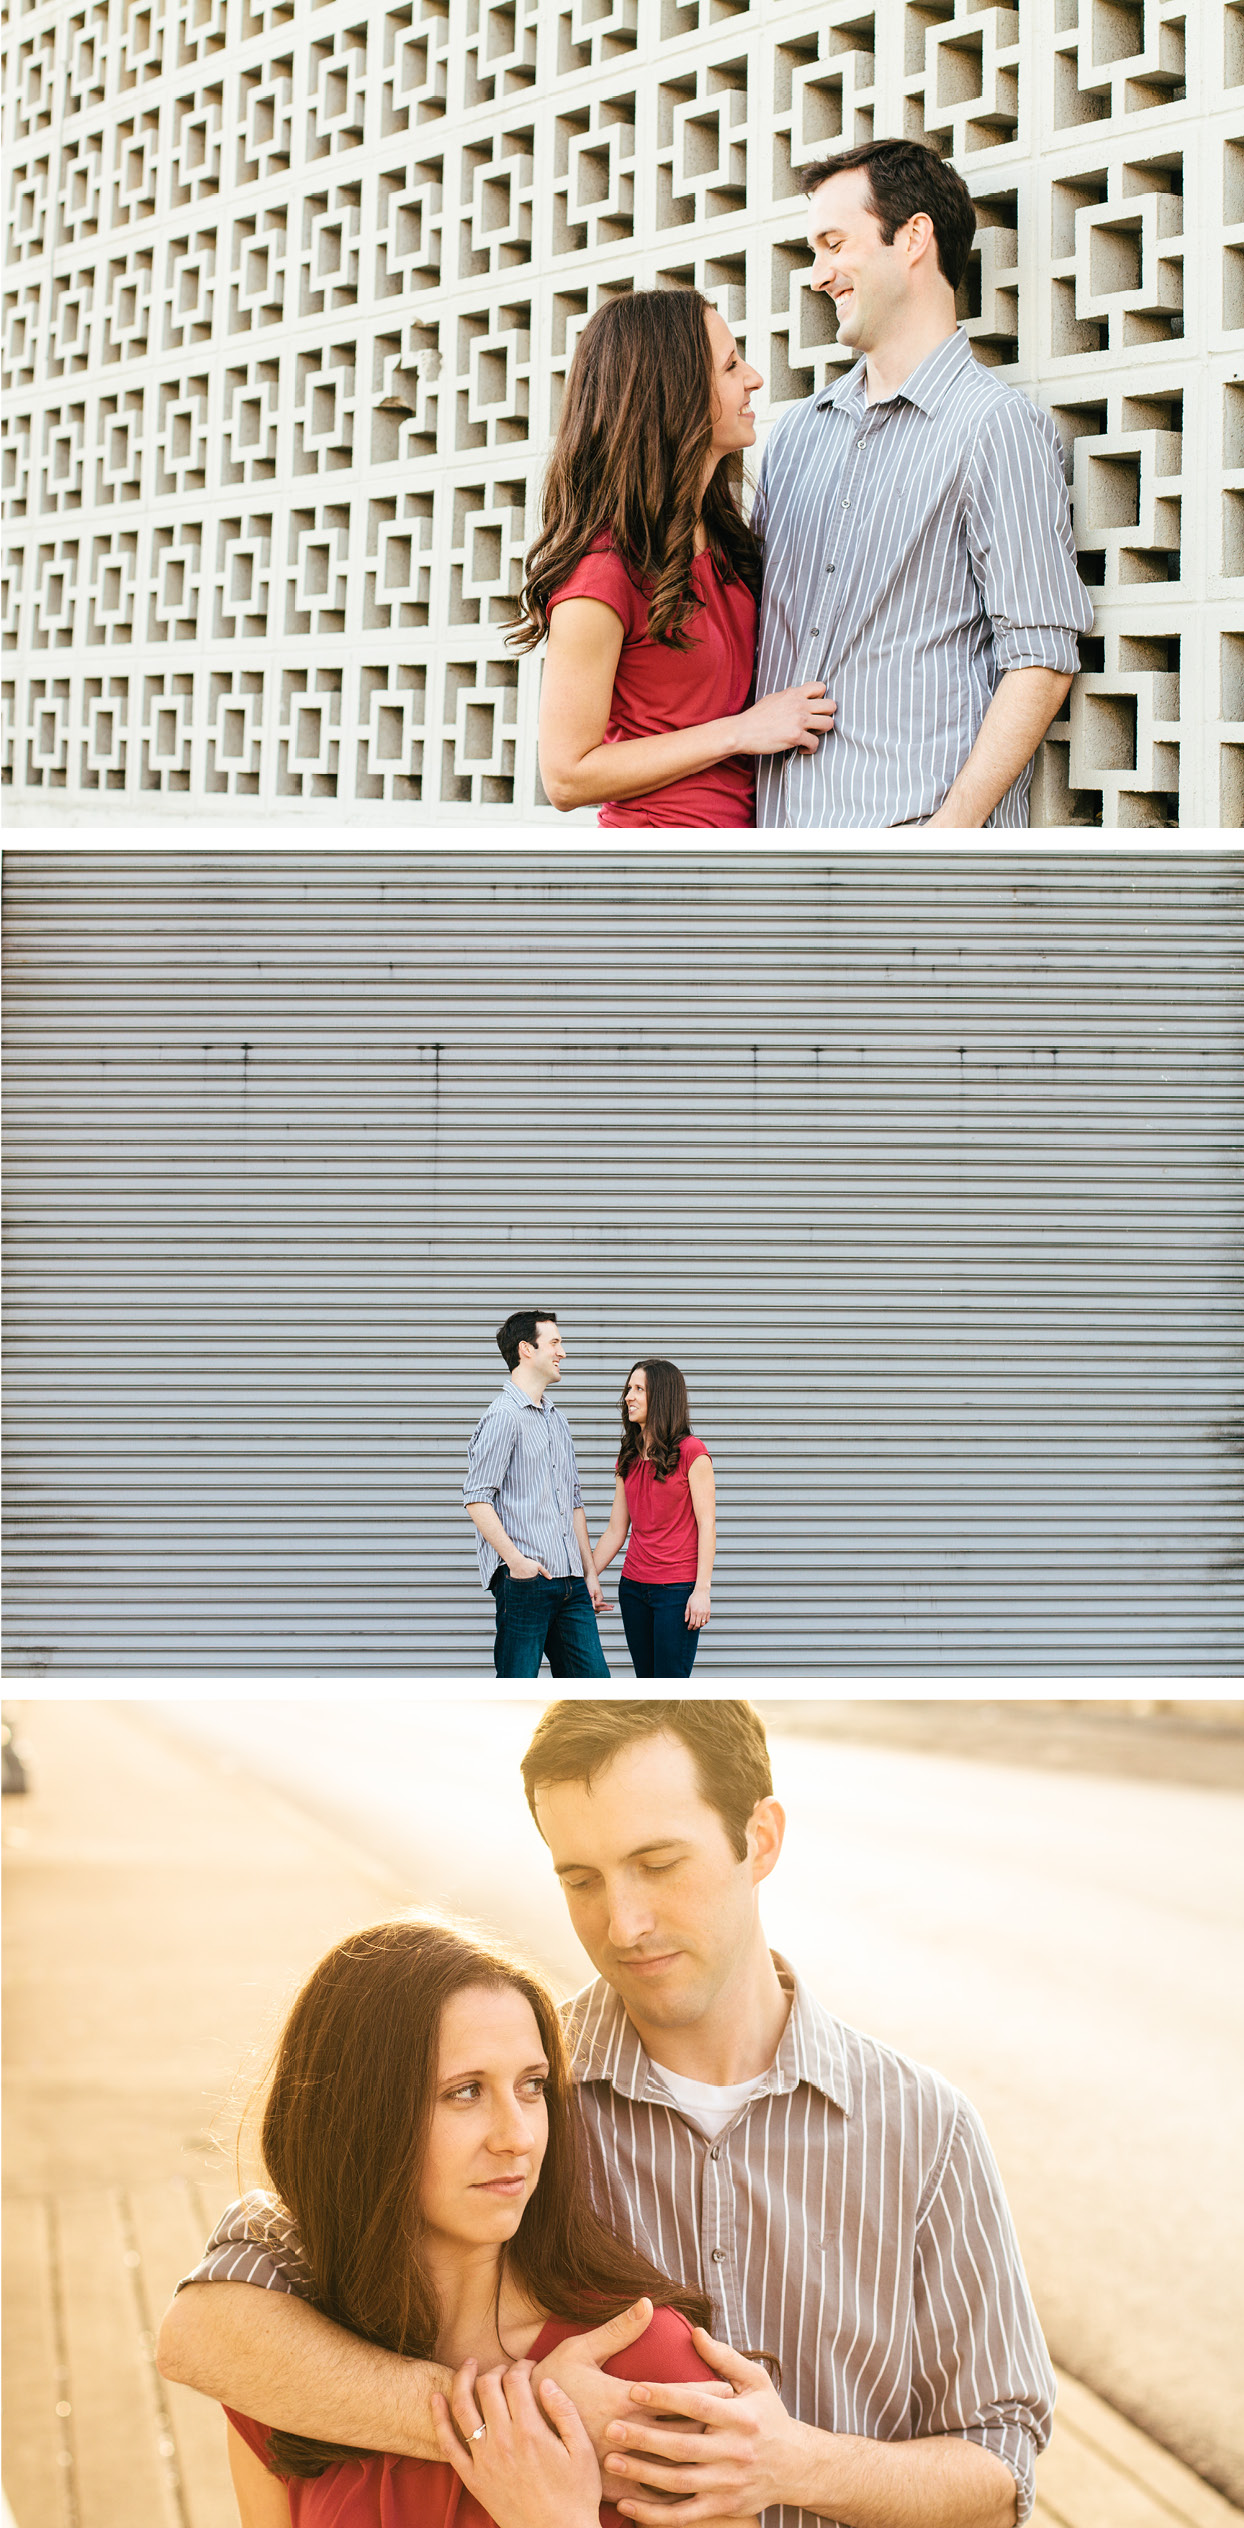 CK-Photo-Nashville-engagement-photographer-mh2.jpg